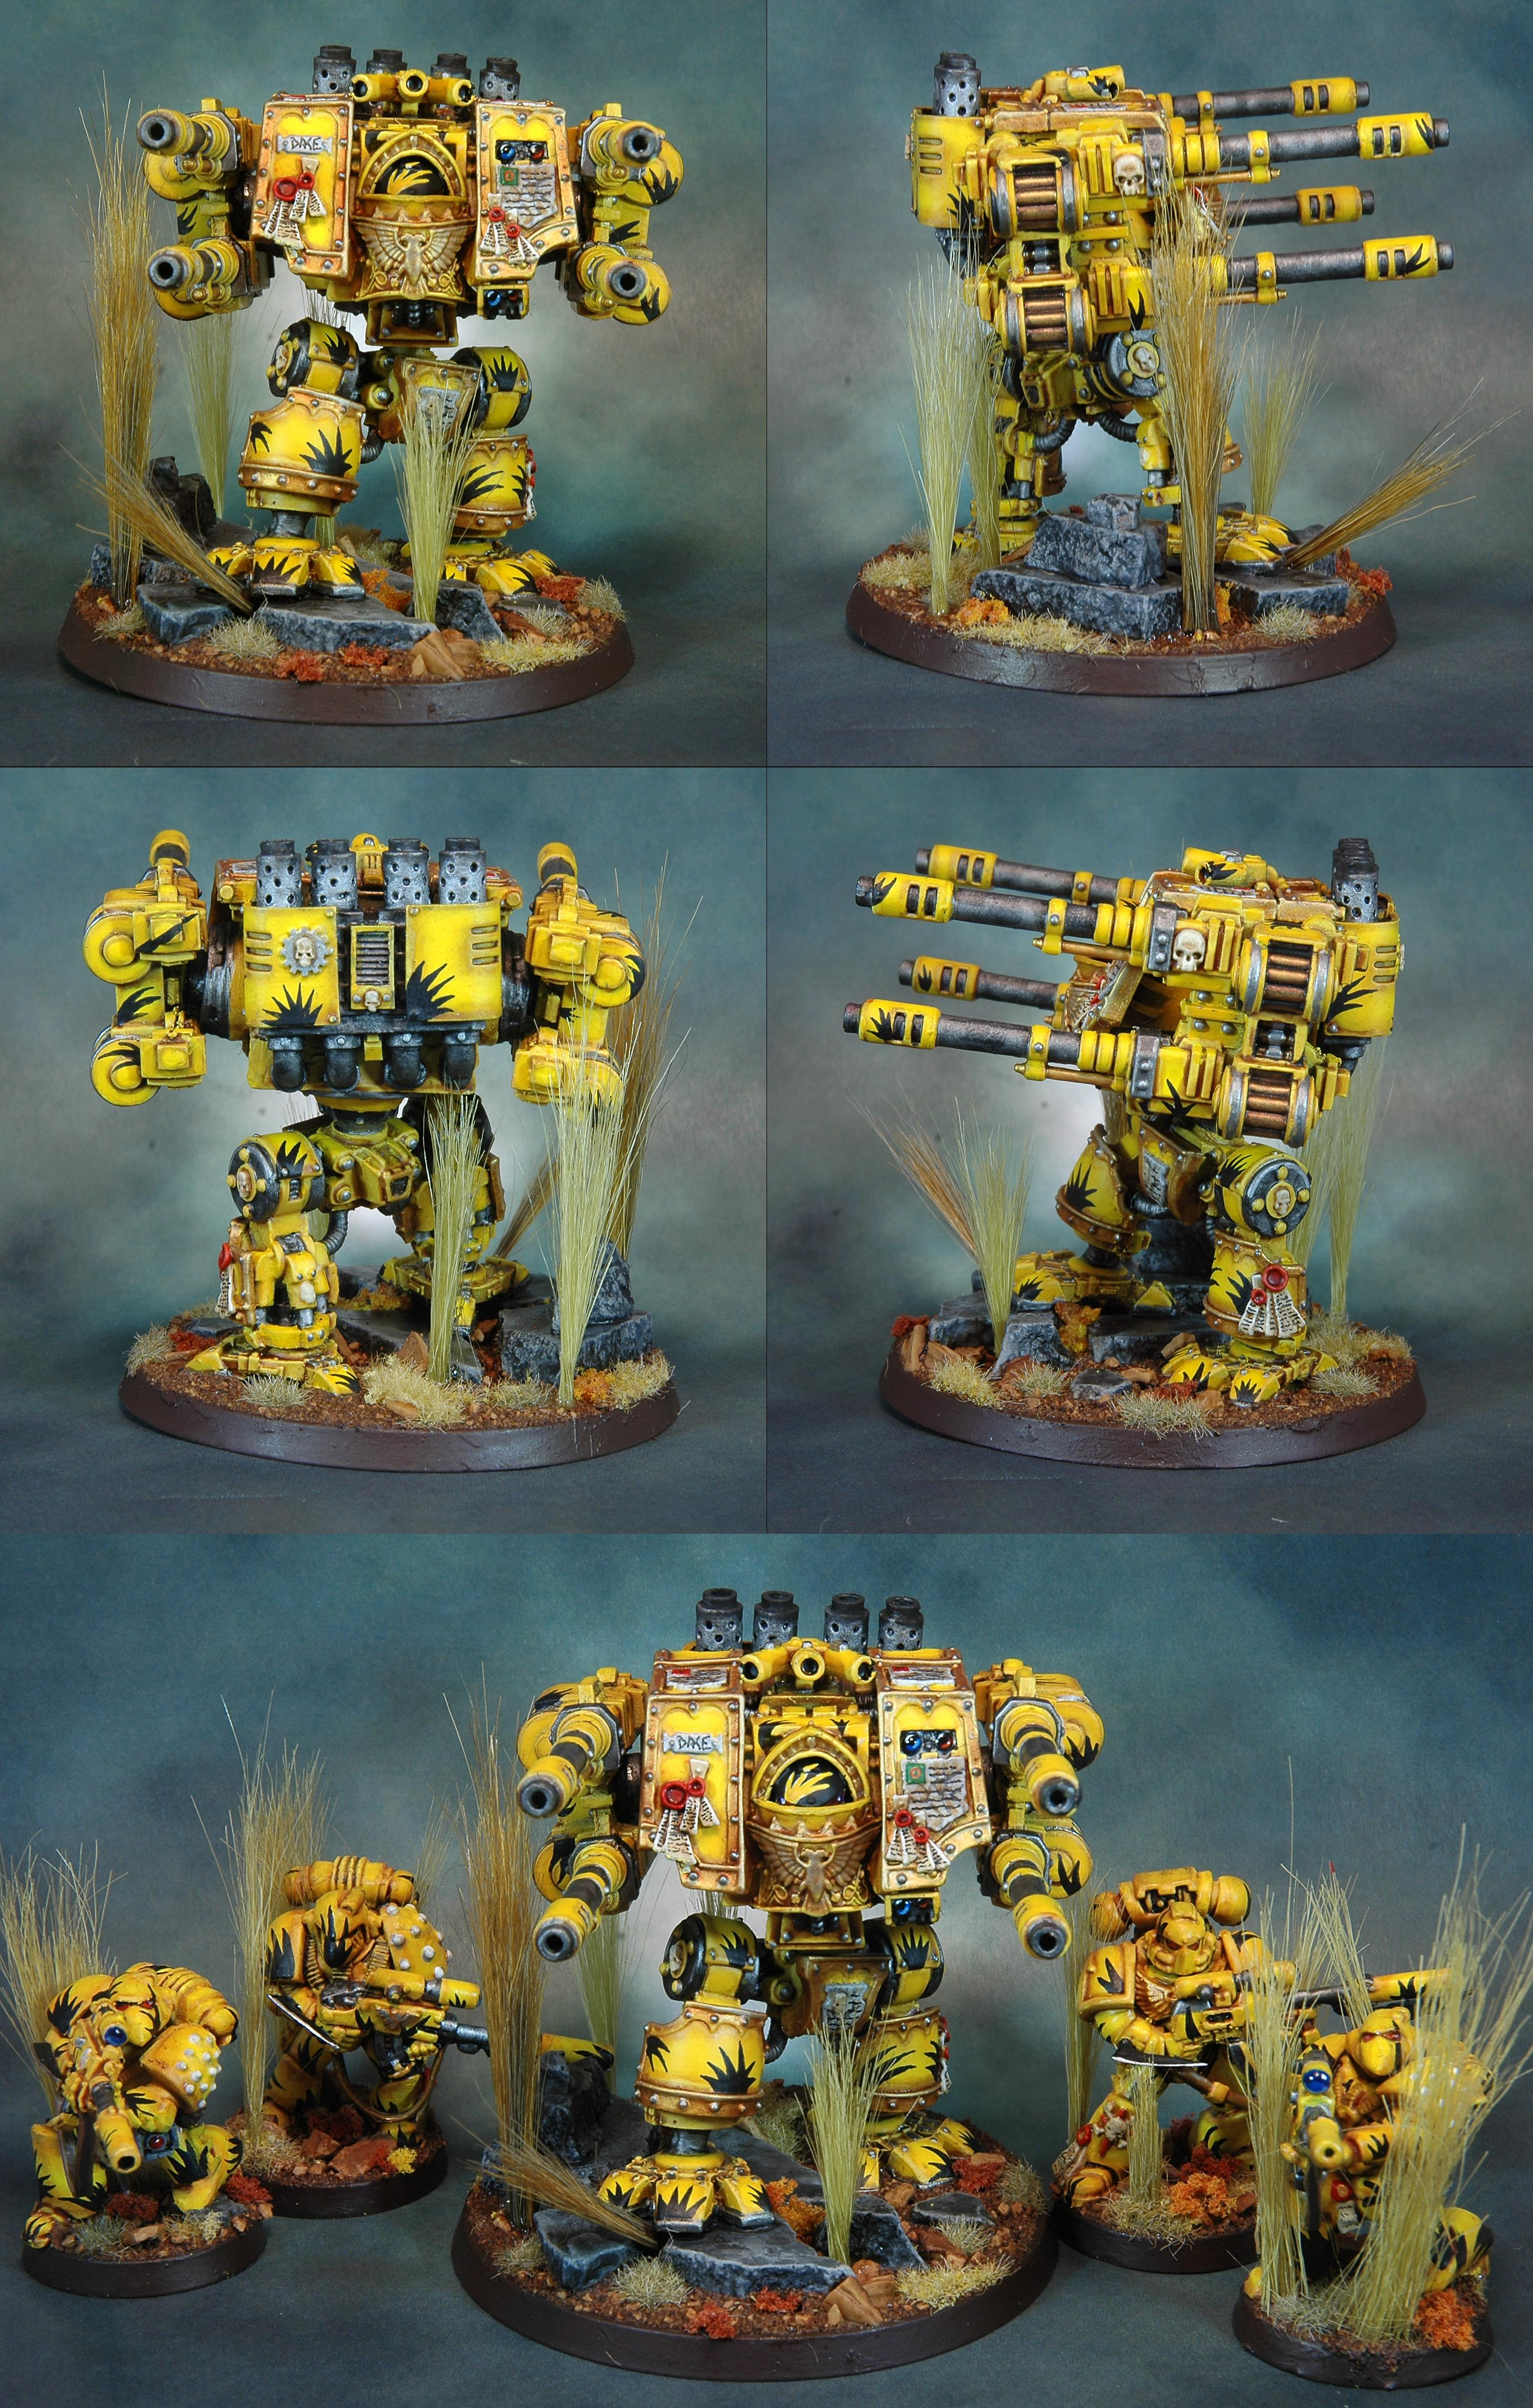 Dreadnought, Mantis Warriors, Space Marines, Tranquility, Venerable, Warhammer 40,000